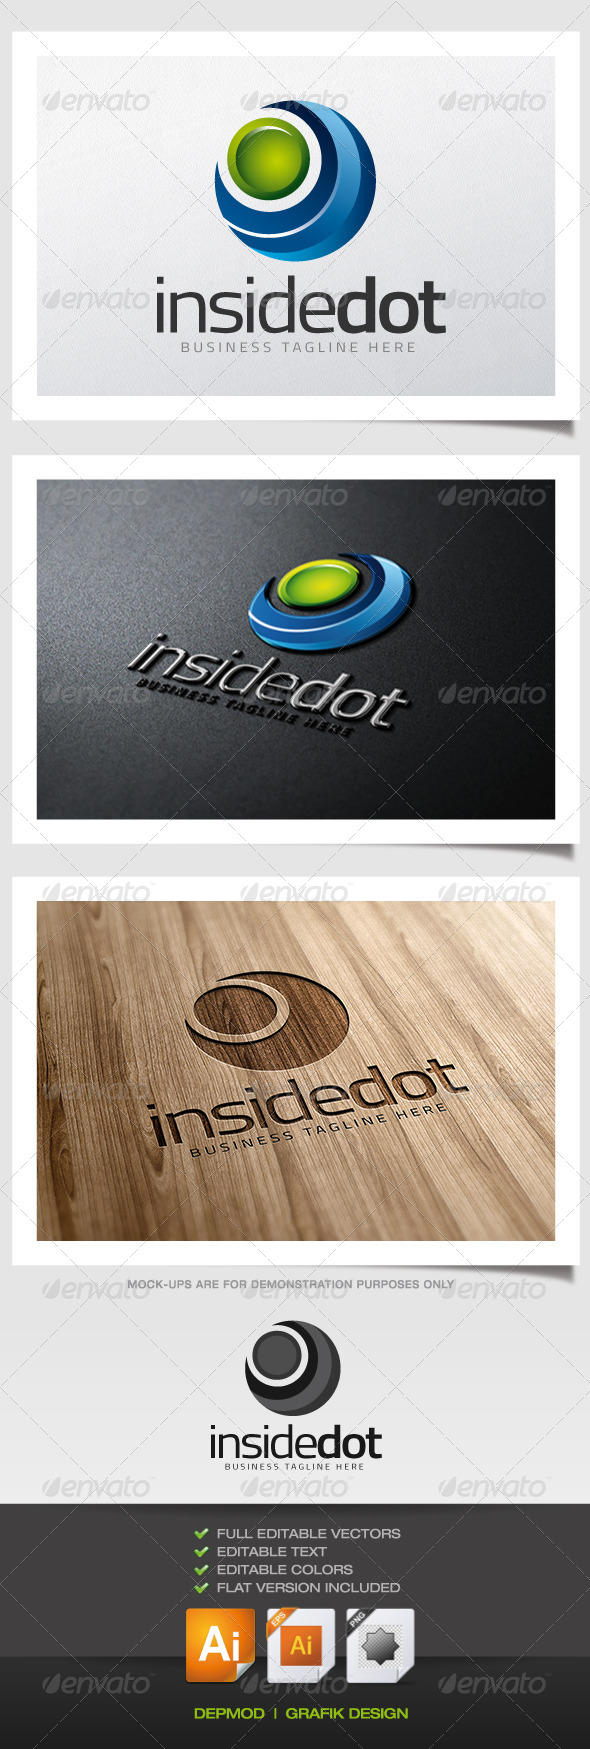 GraphicRiver Inside Dot logo 5688390